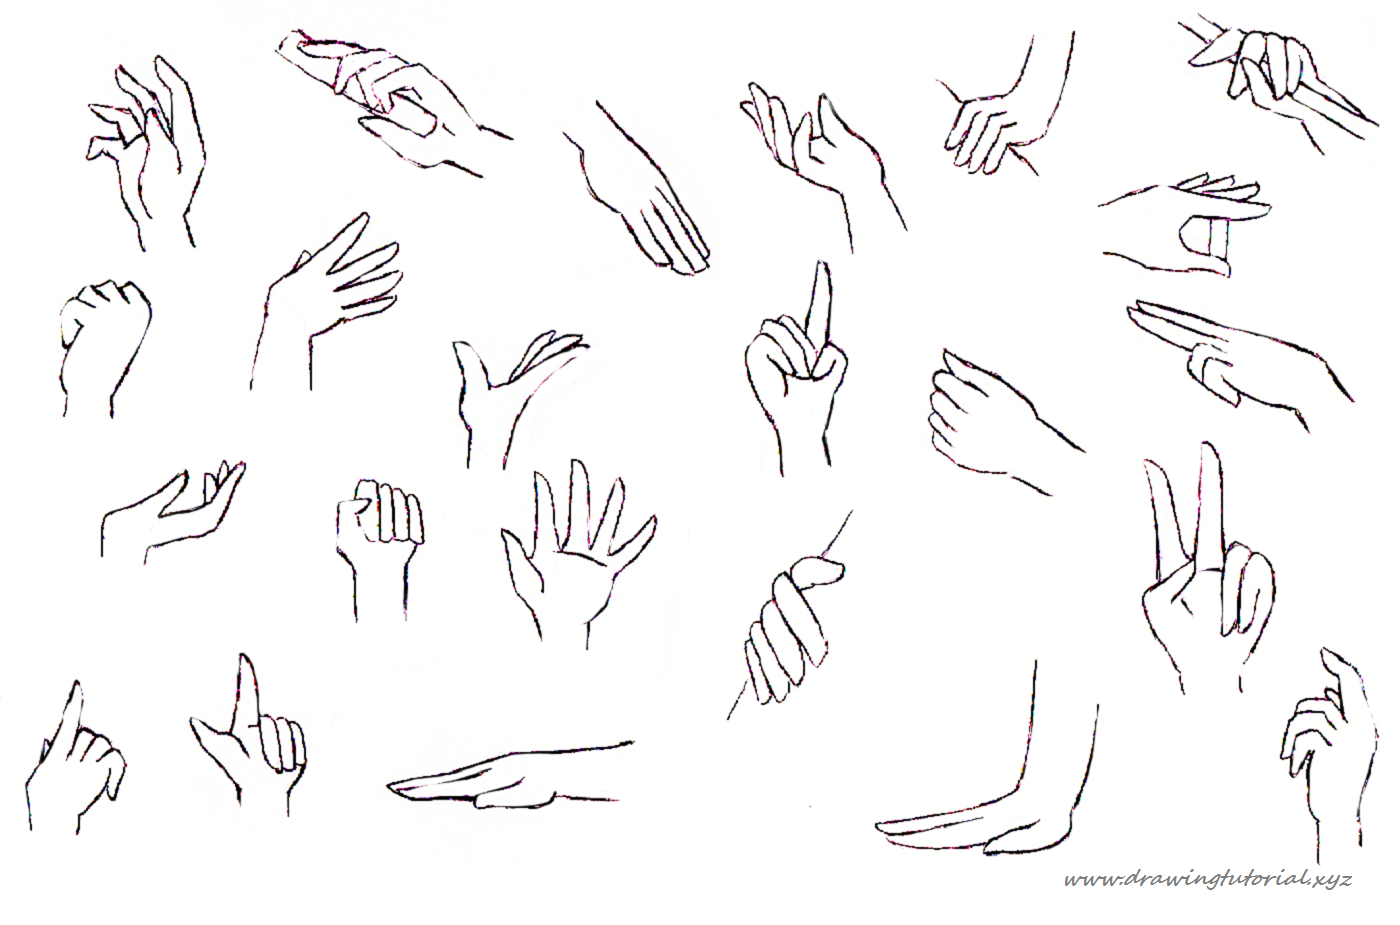 howtodrawanimehandsholdingsomething.png (1400×925